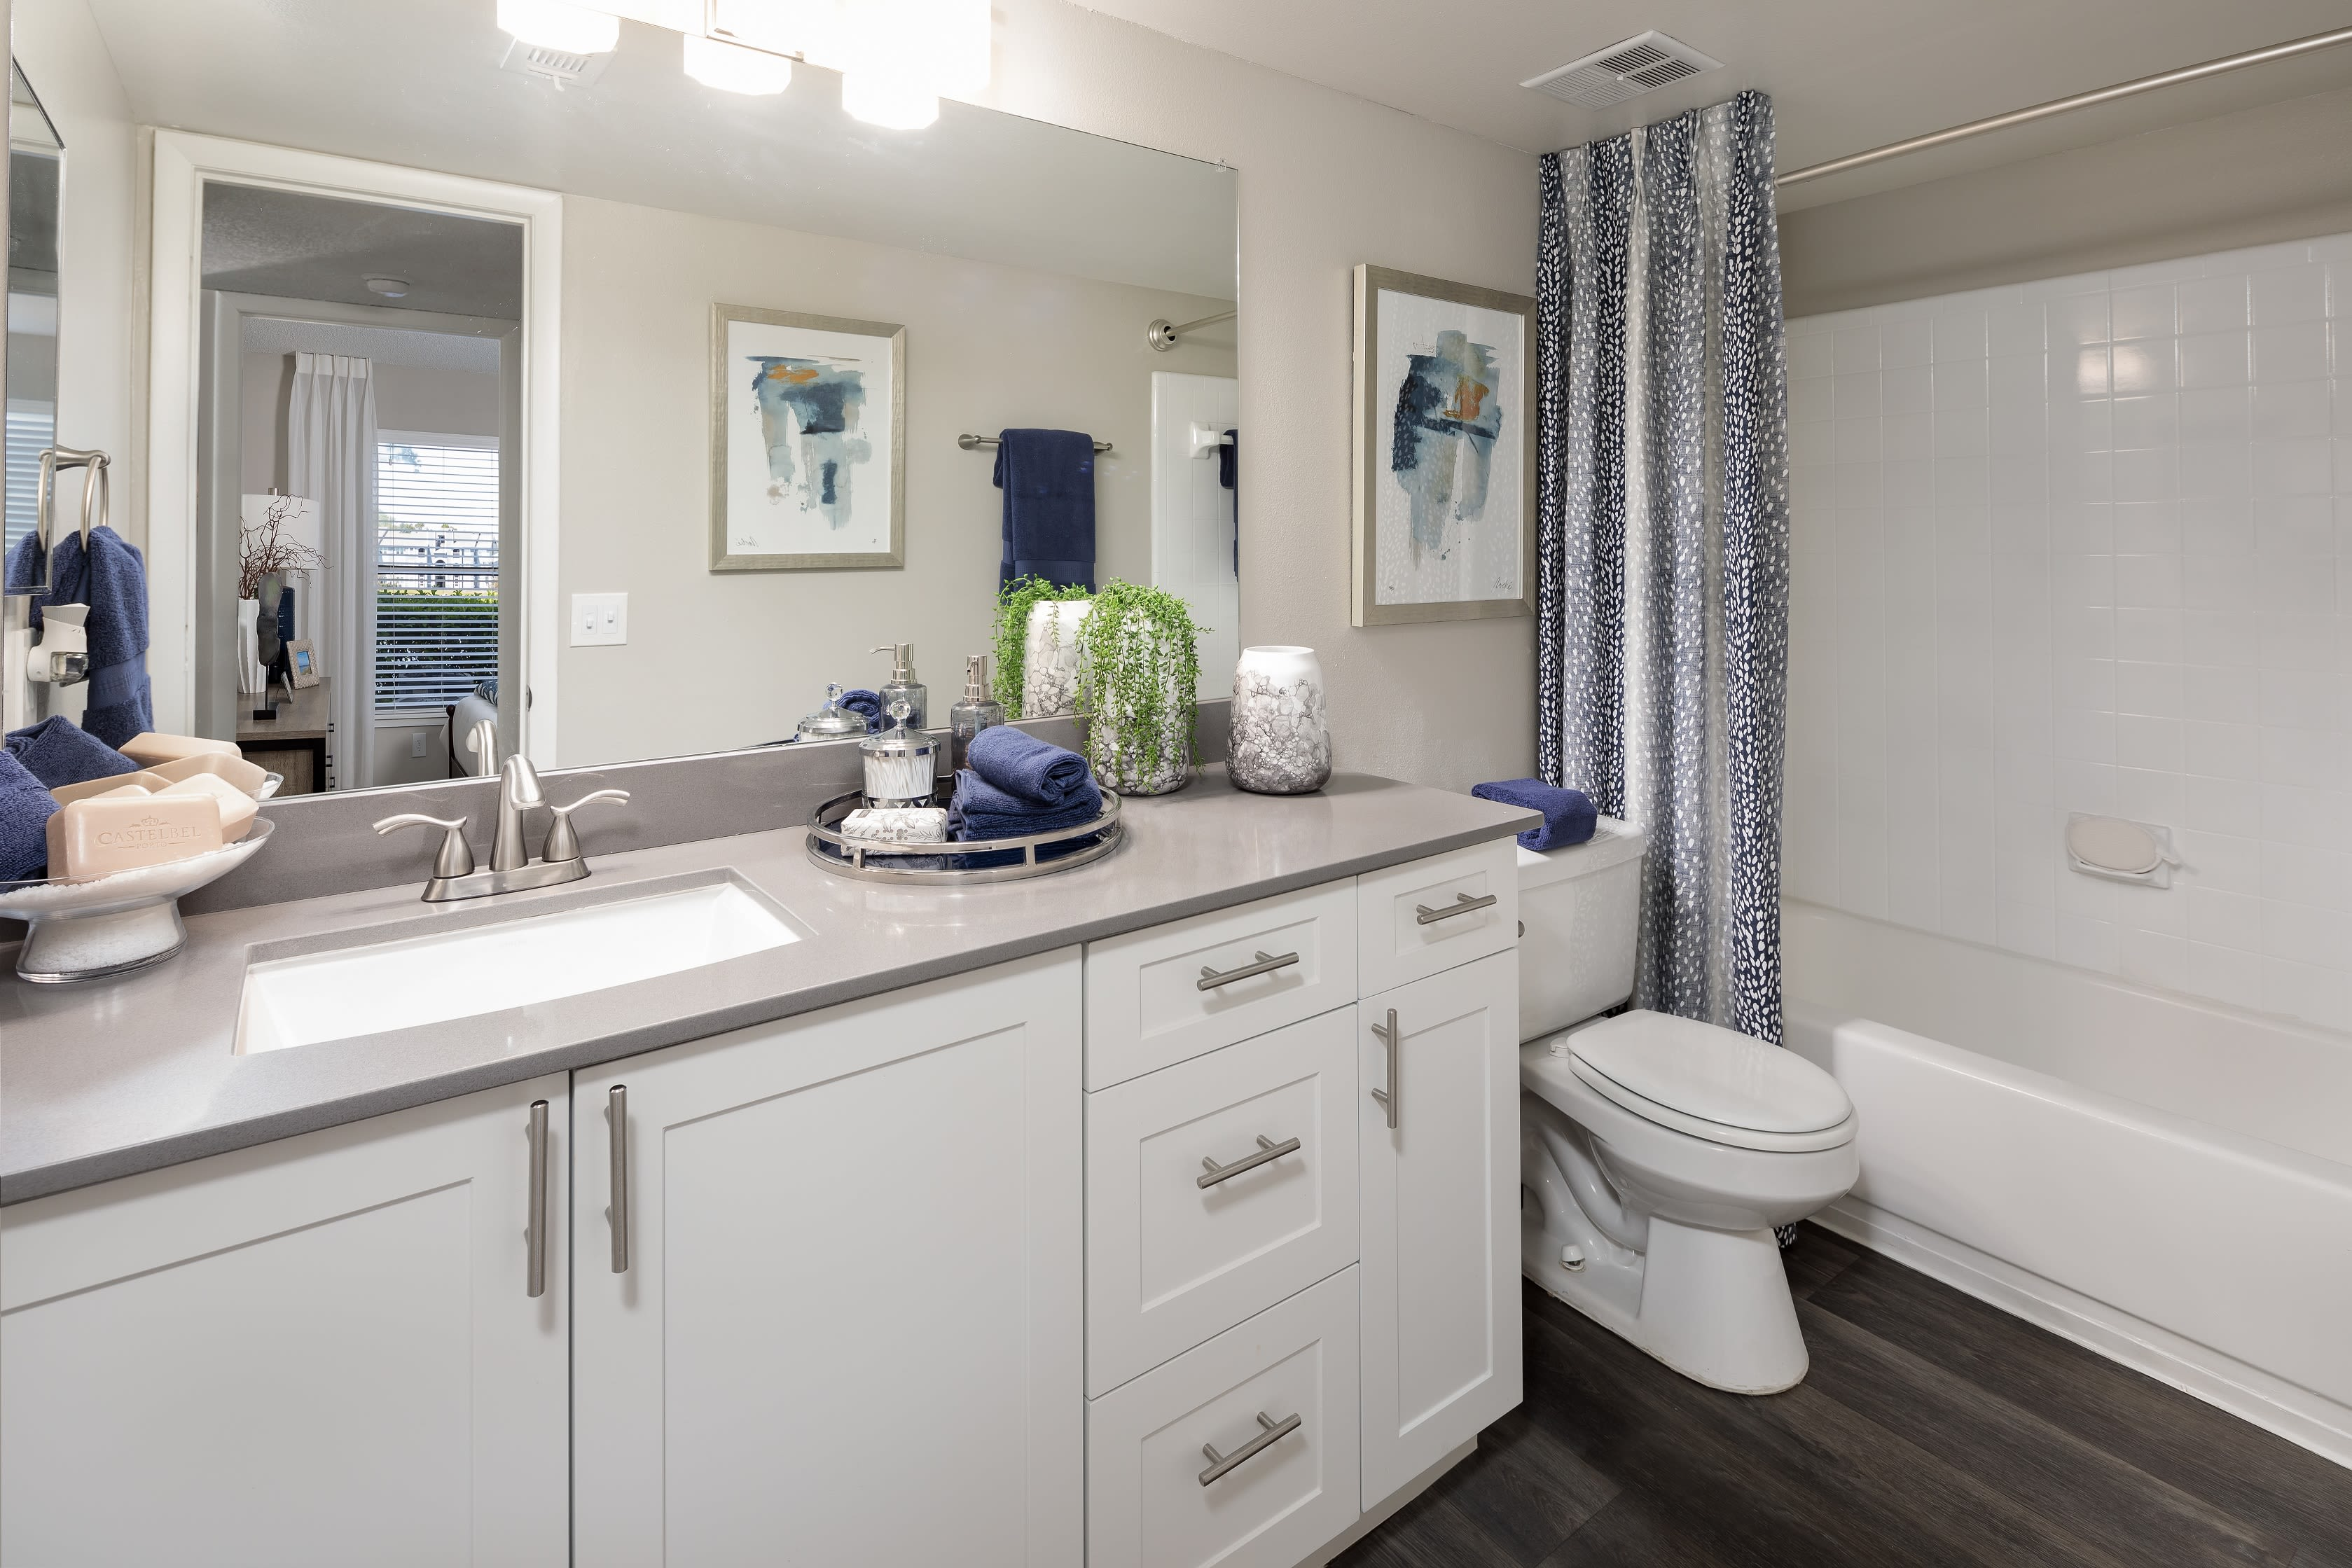 A large bathroom at Onyx Winter Park in Casselberry, FL